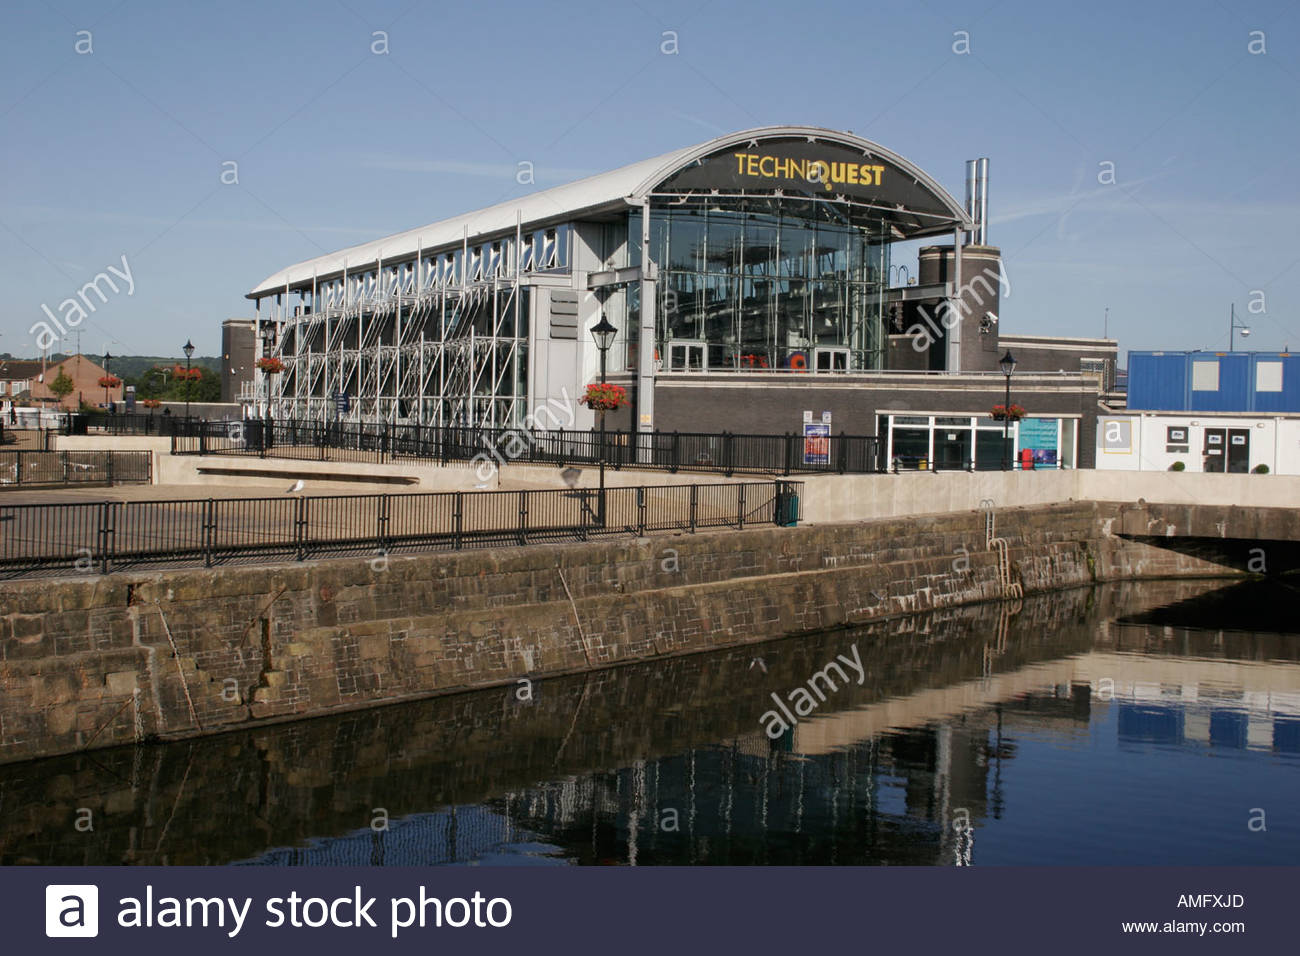 Techniquest South Wales, TECHNIQUEST MUSEUM, CARDIFF BAY, SOUTH GLAMORGAN, SOUTH WALES, U.K ...